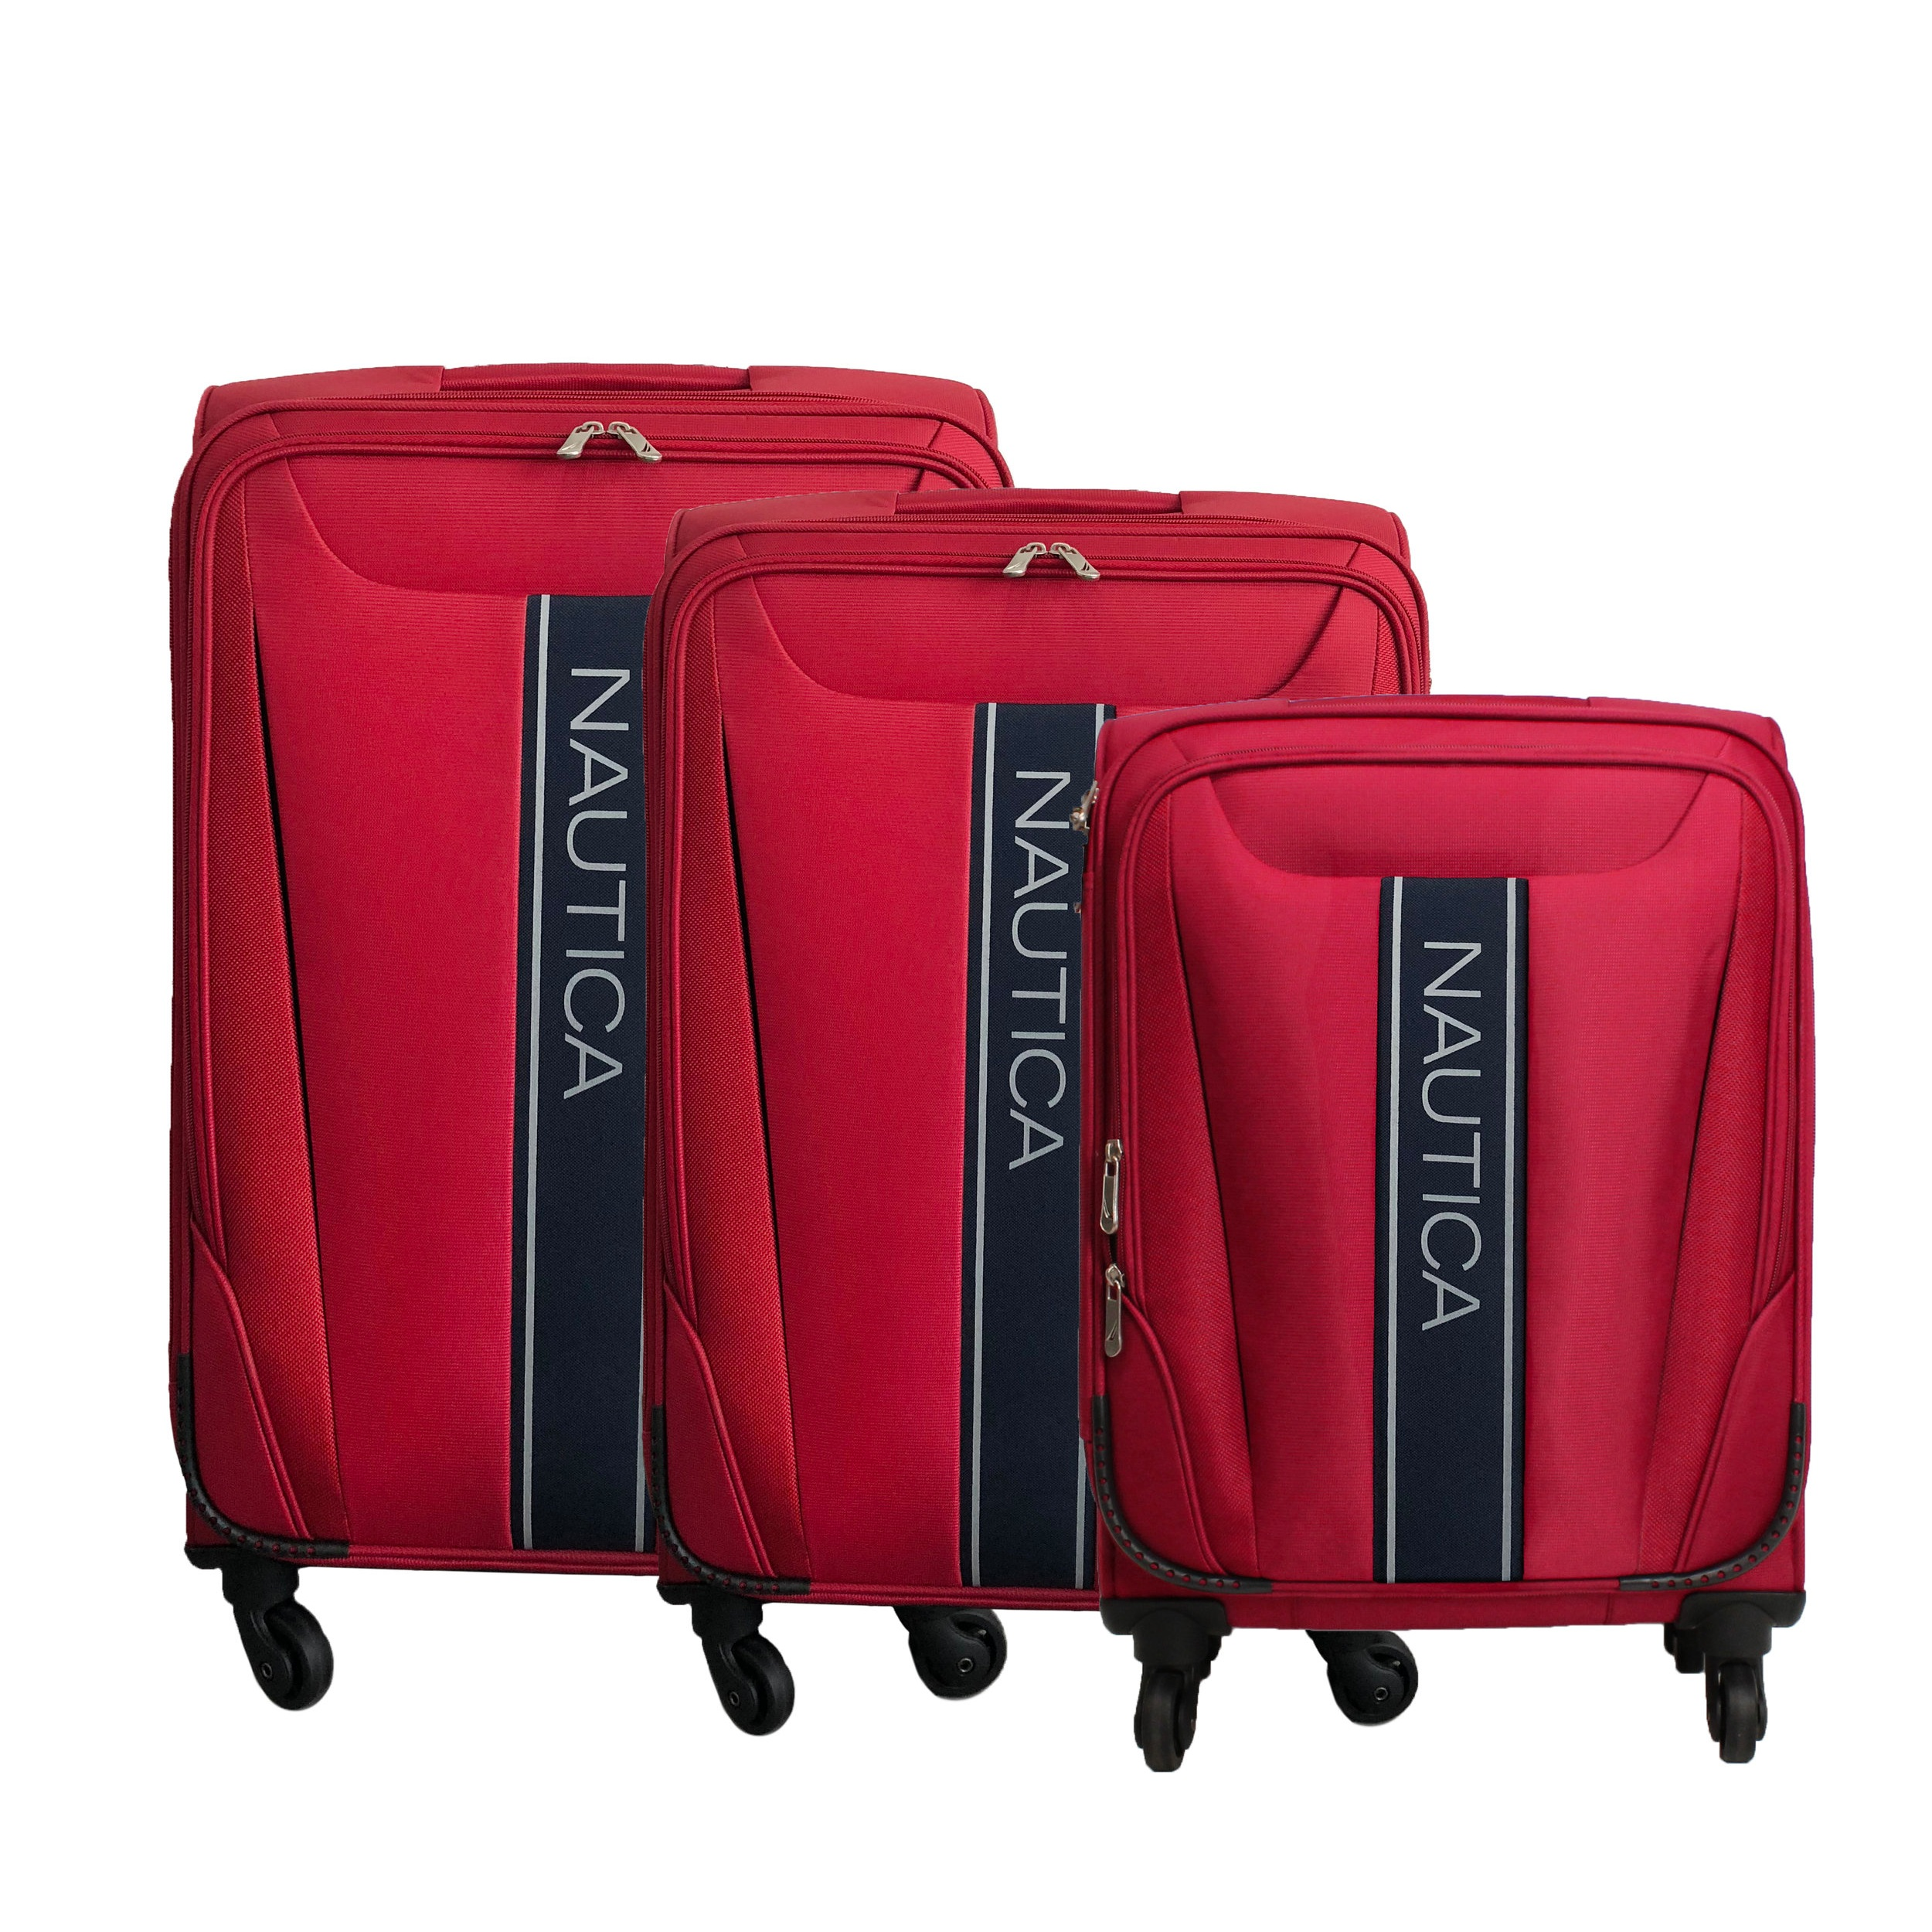 Luggage - Nautica set of 3 for $200